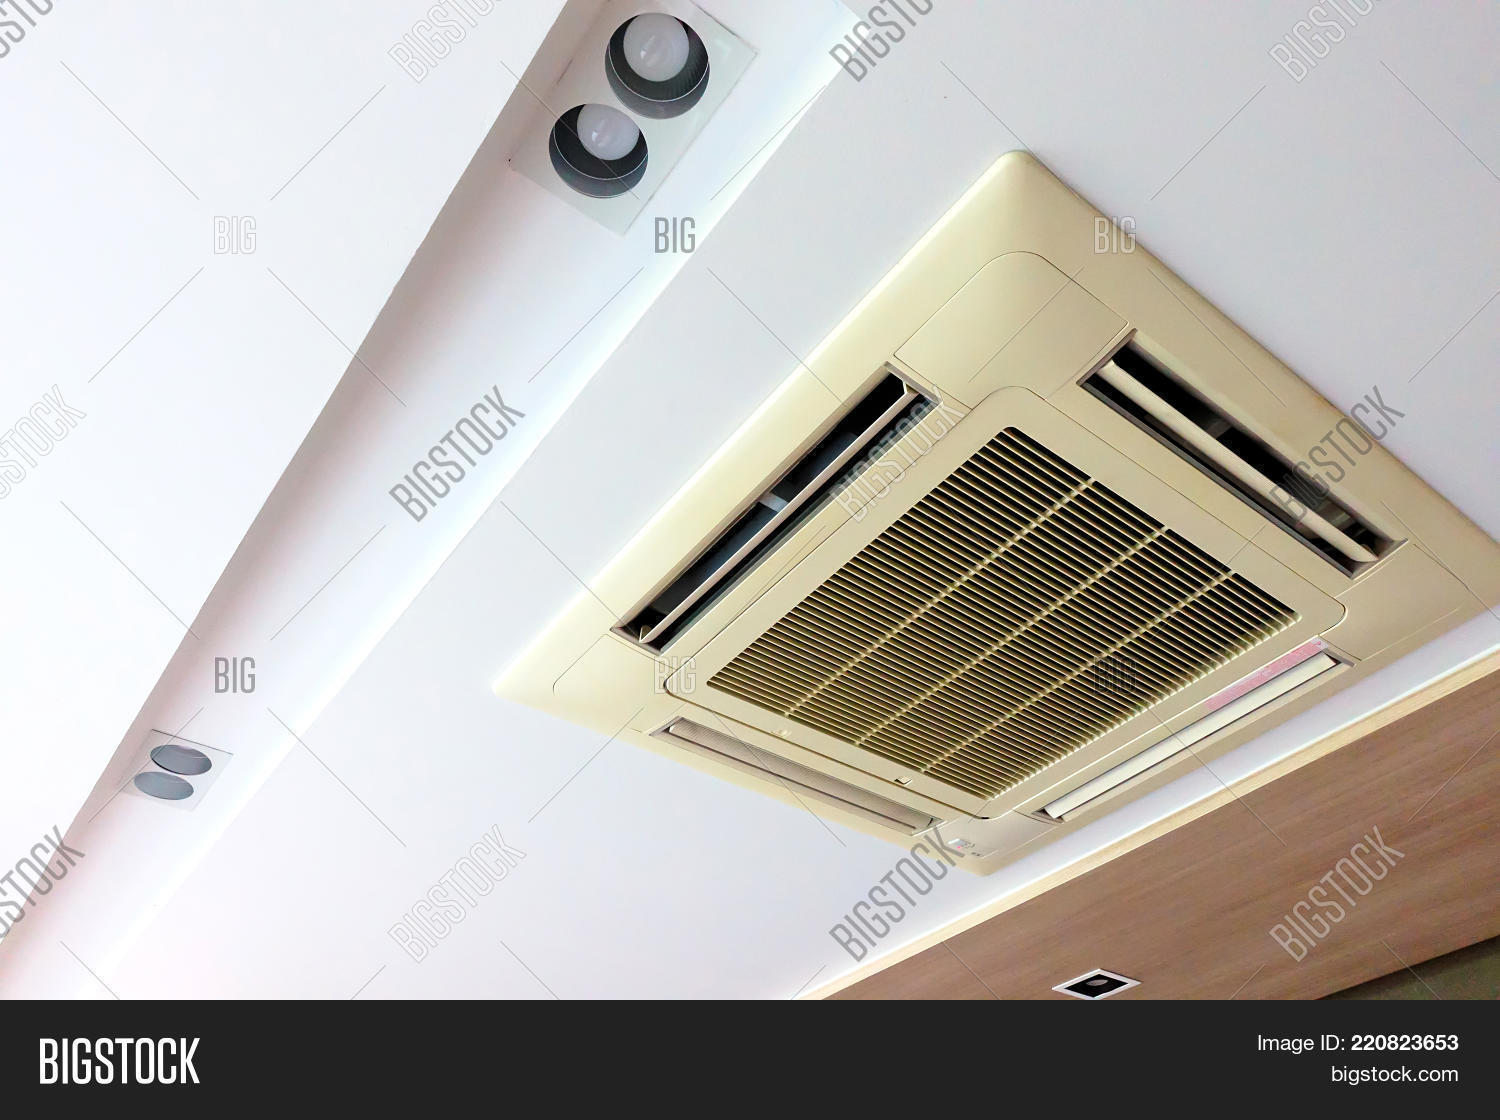 pump heat fit mini en ceiling mitsubishi article zone wid btu constrain hei dual conditioner normal ductless air split cassette